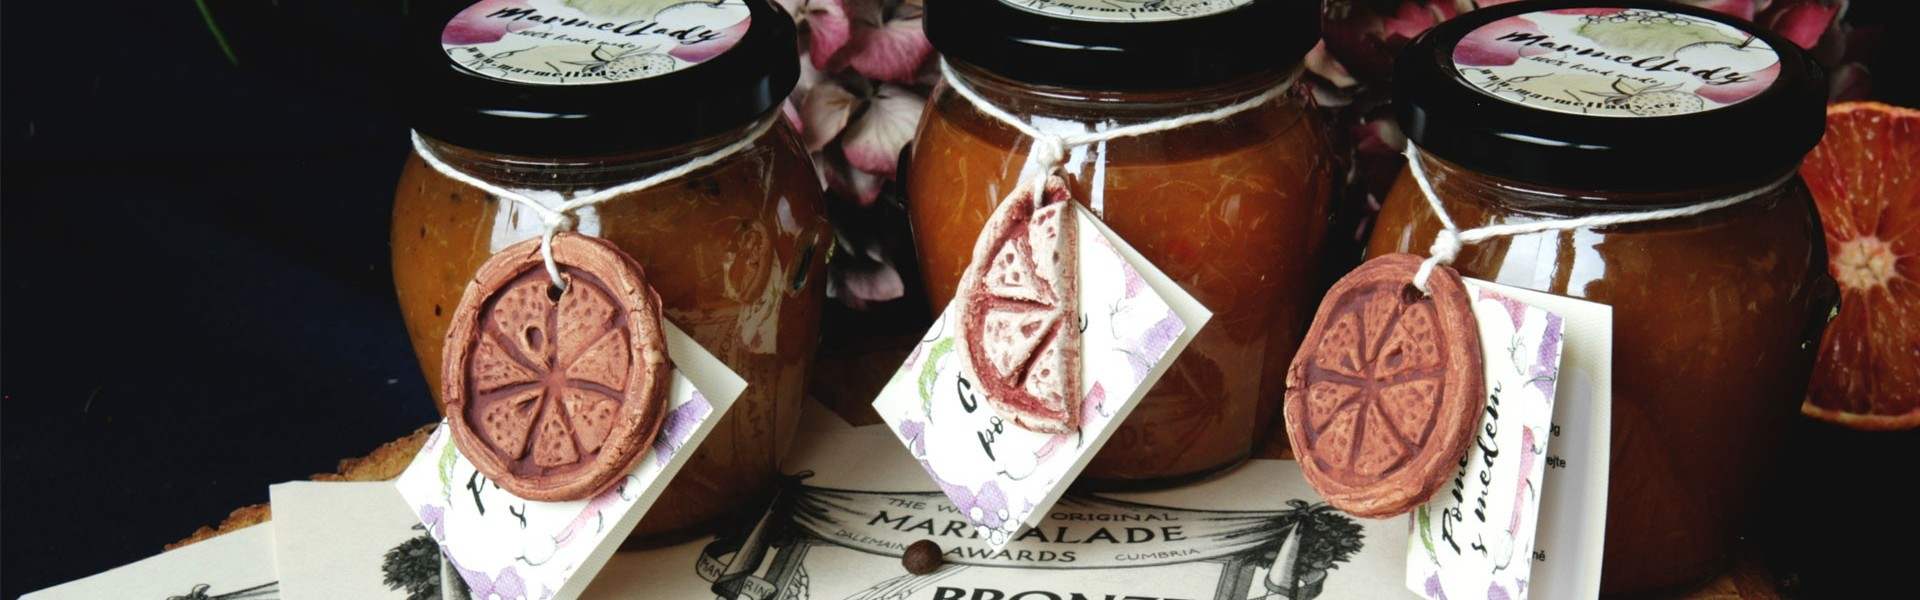 The World's Original Marmalade Awards 2020